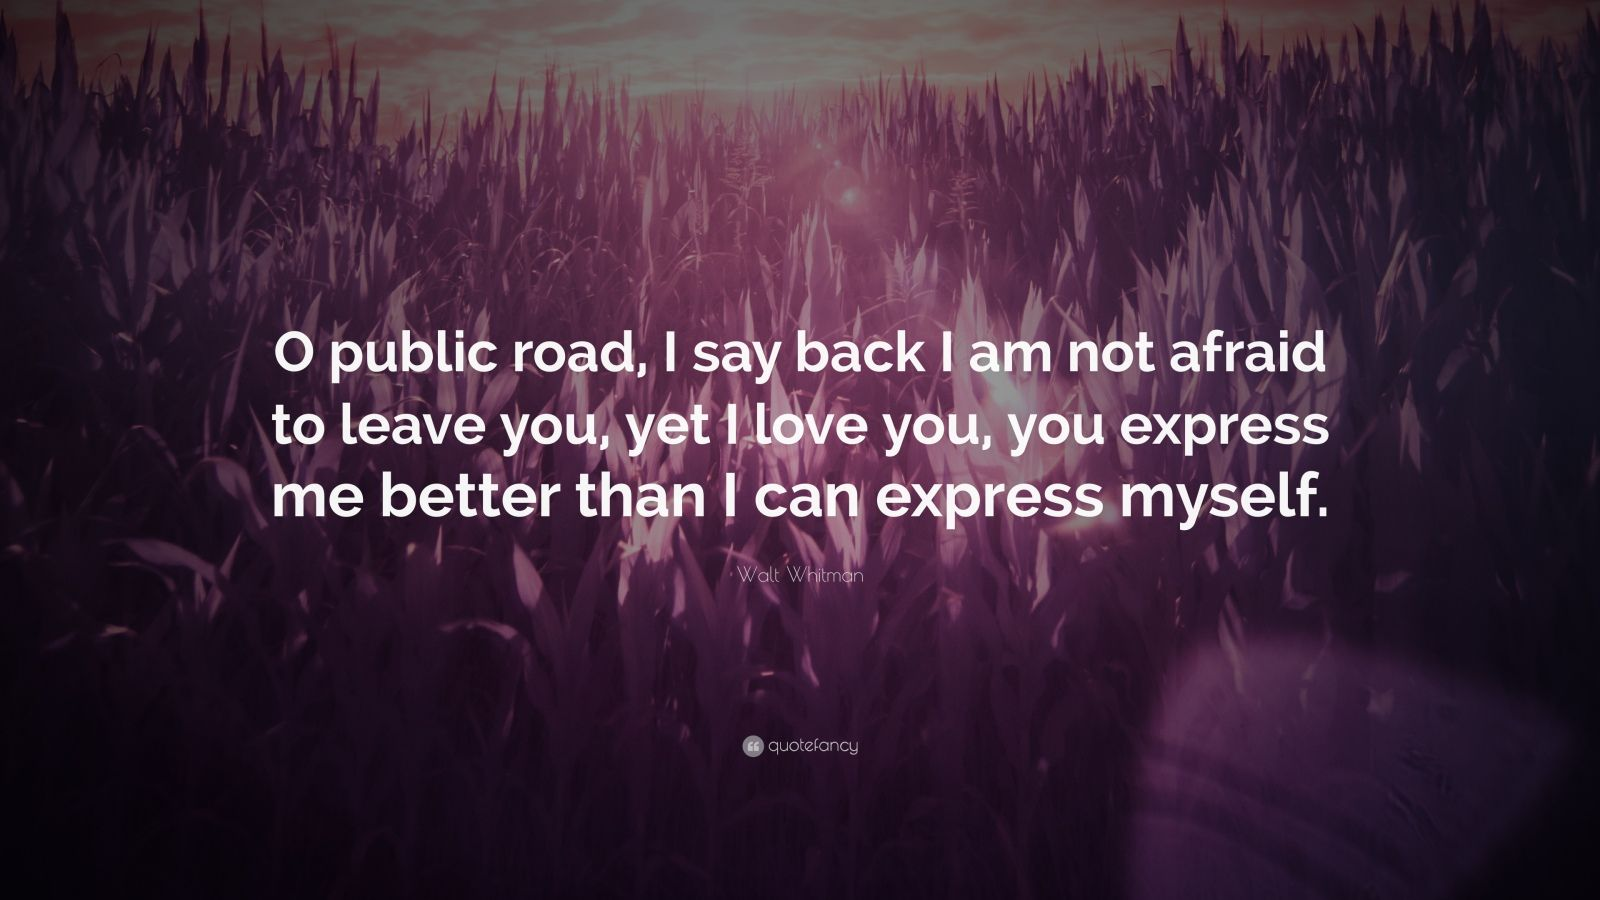 """Walt Whitman Quote: """"O public road, I say back I am not afraid to leave you, yet I love you, you express me better than I can express myself."""""""